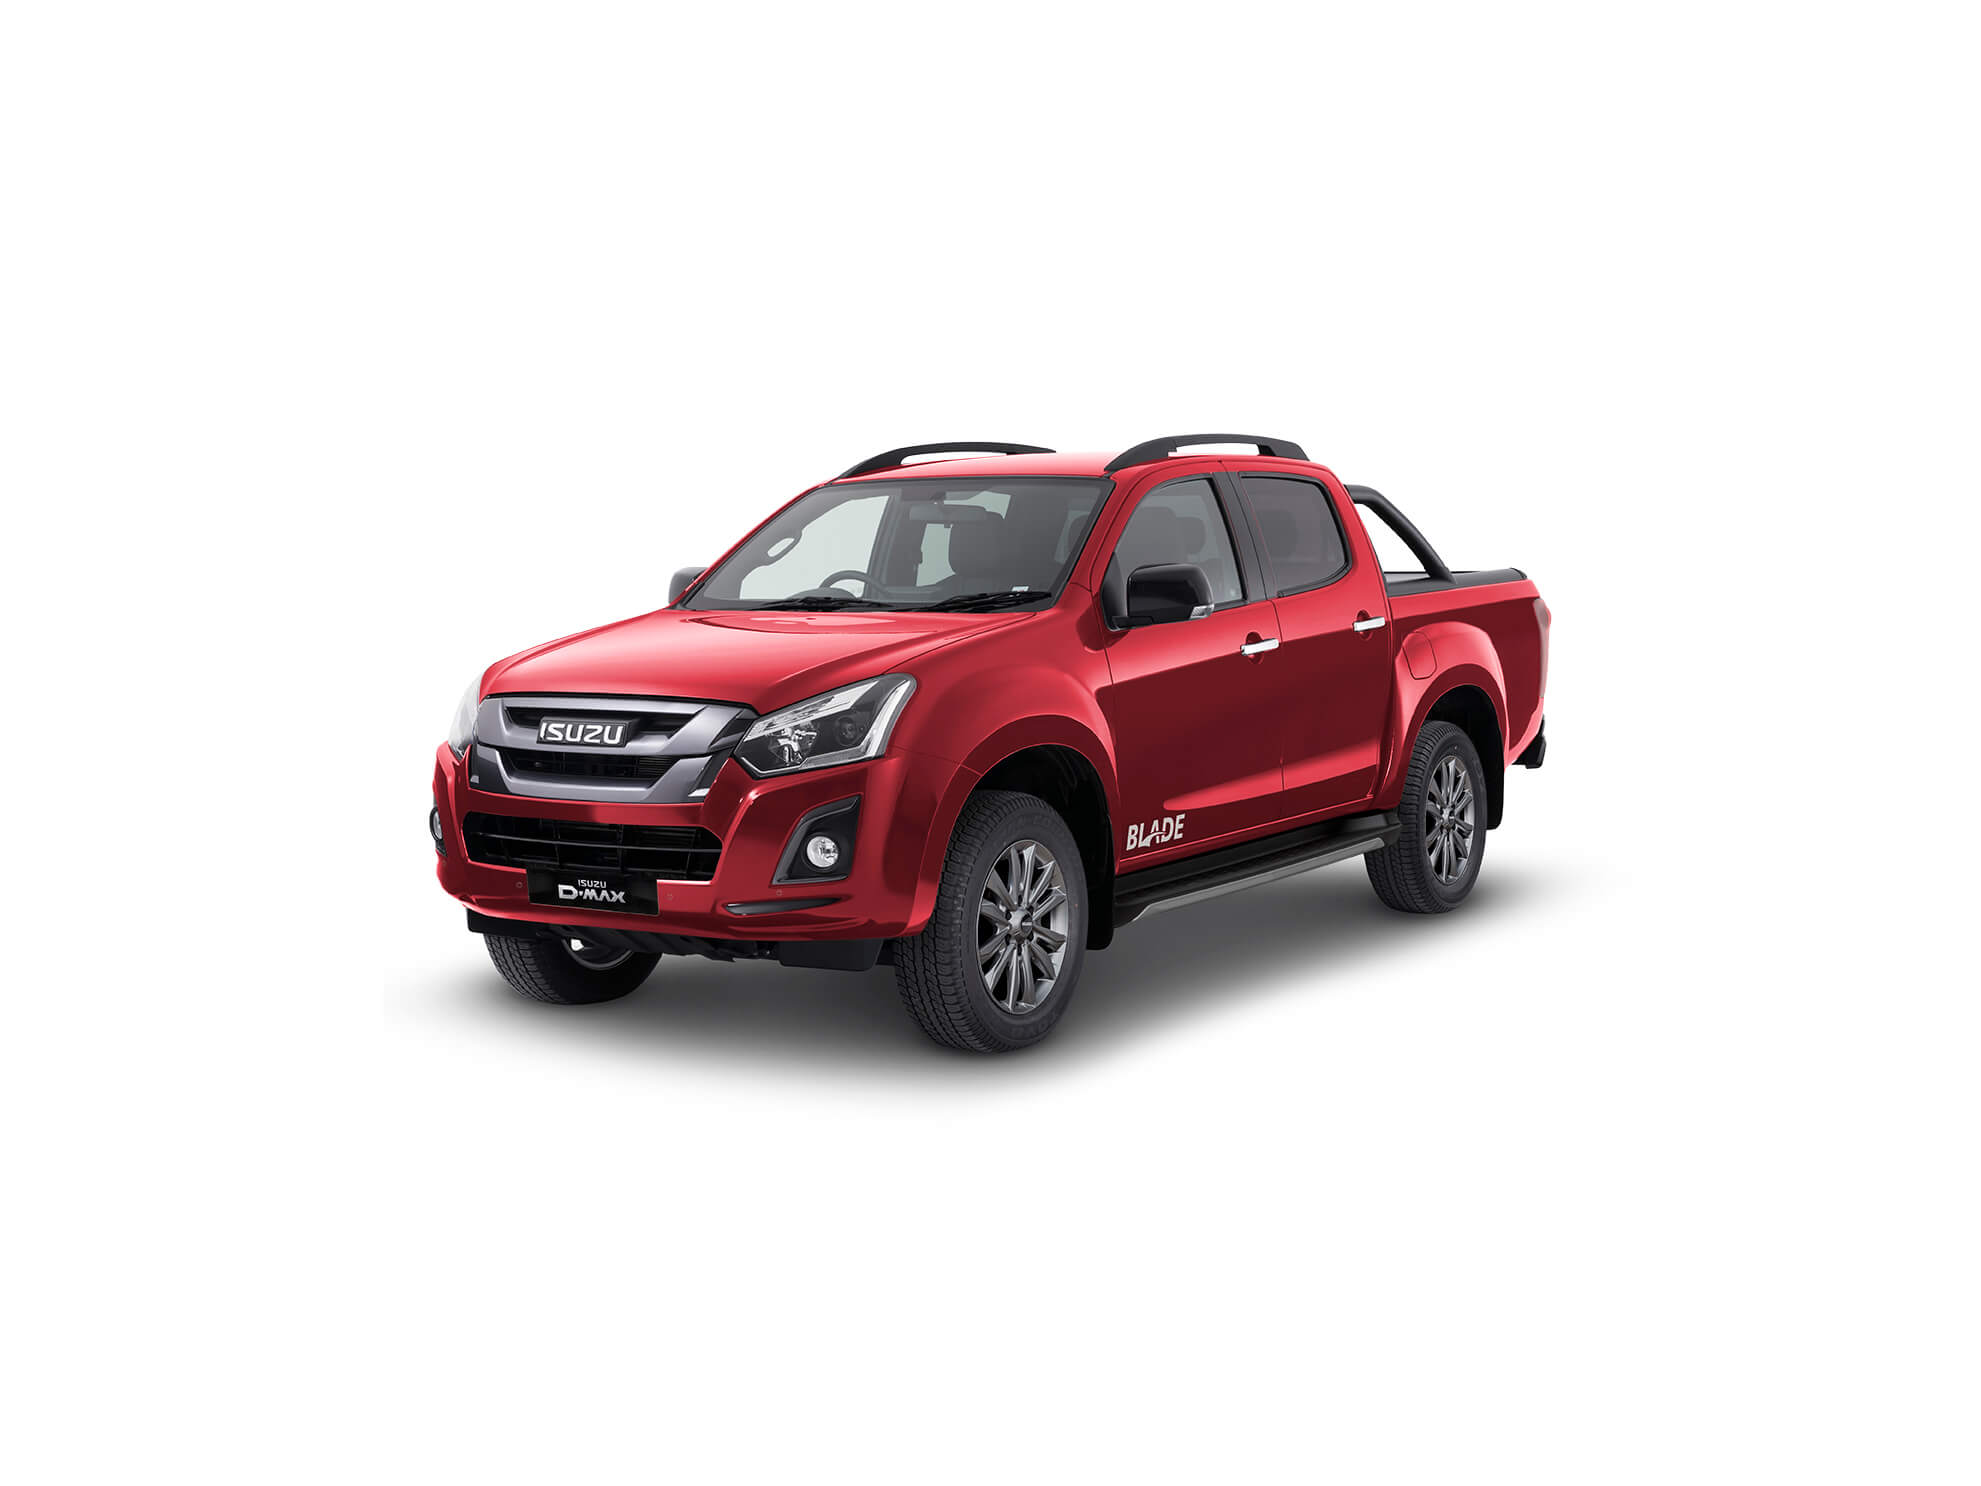 Front view of the Isuzu D-Max Blade in red